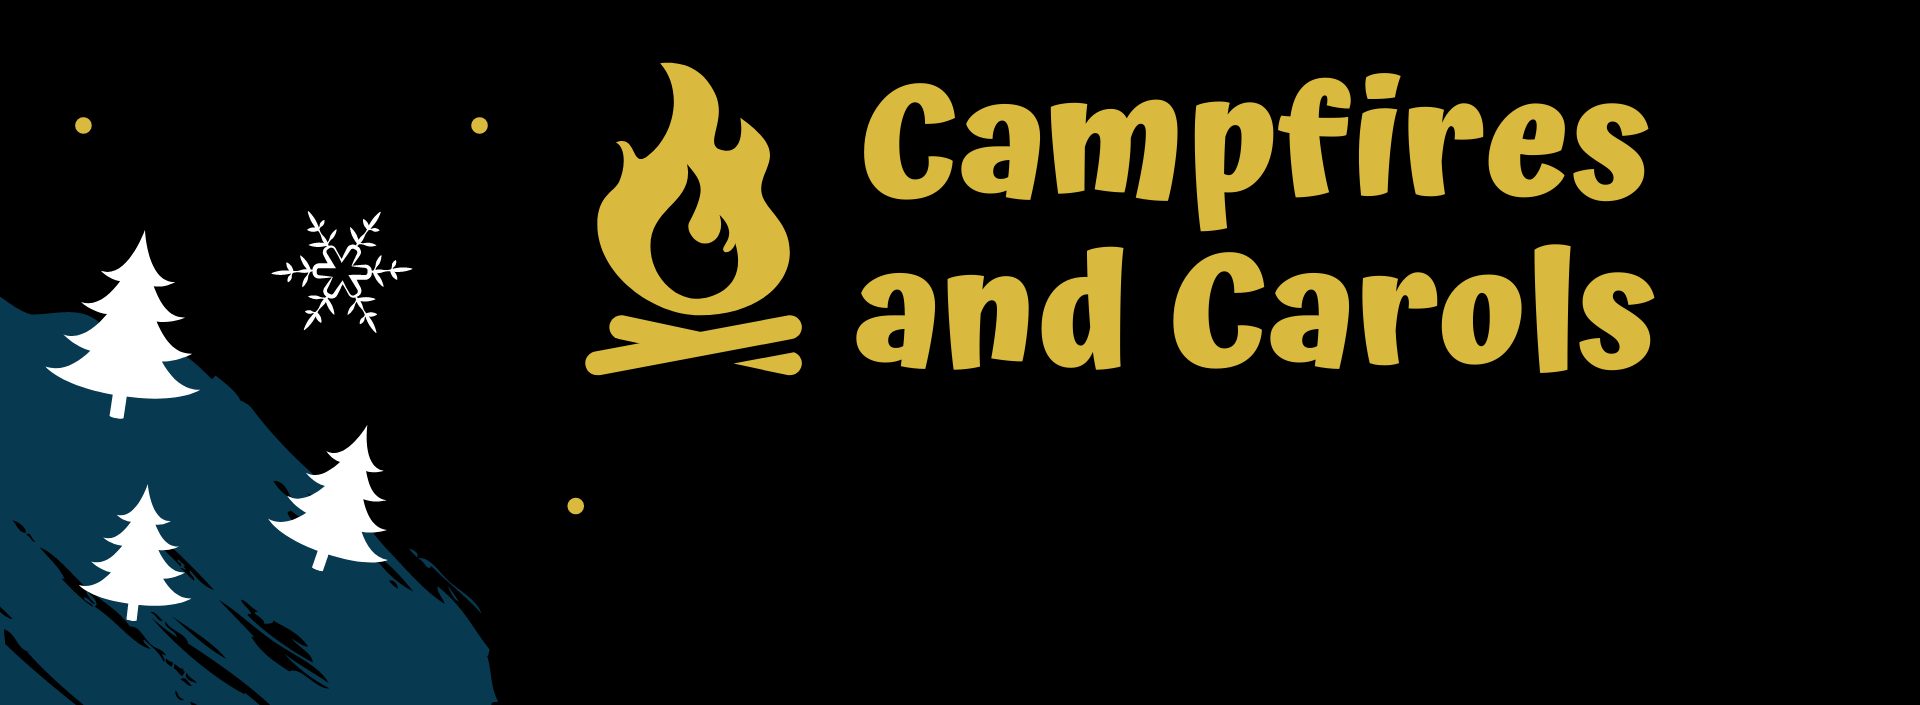 Cross Roads' Campfires and Carols